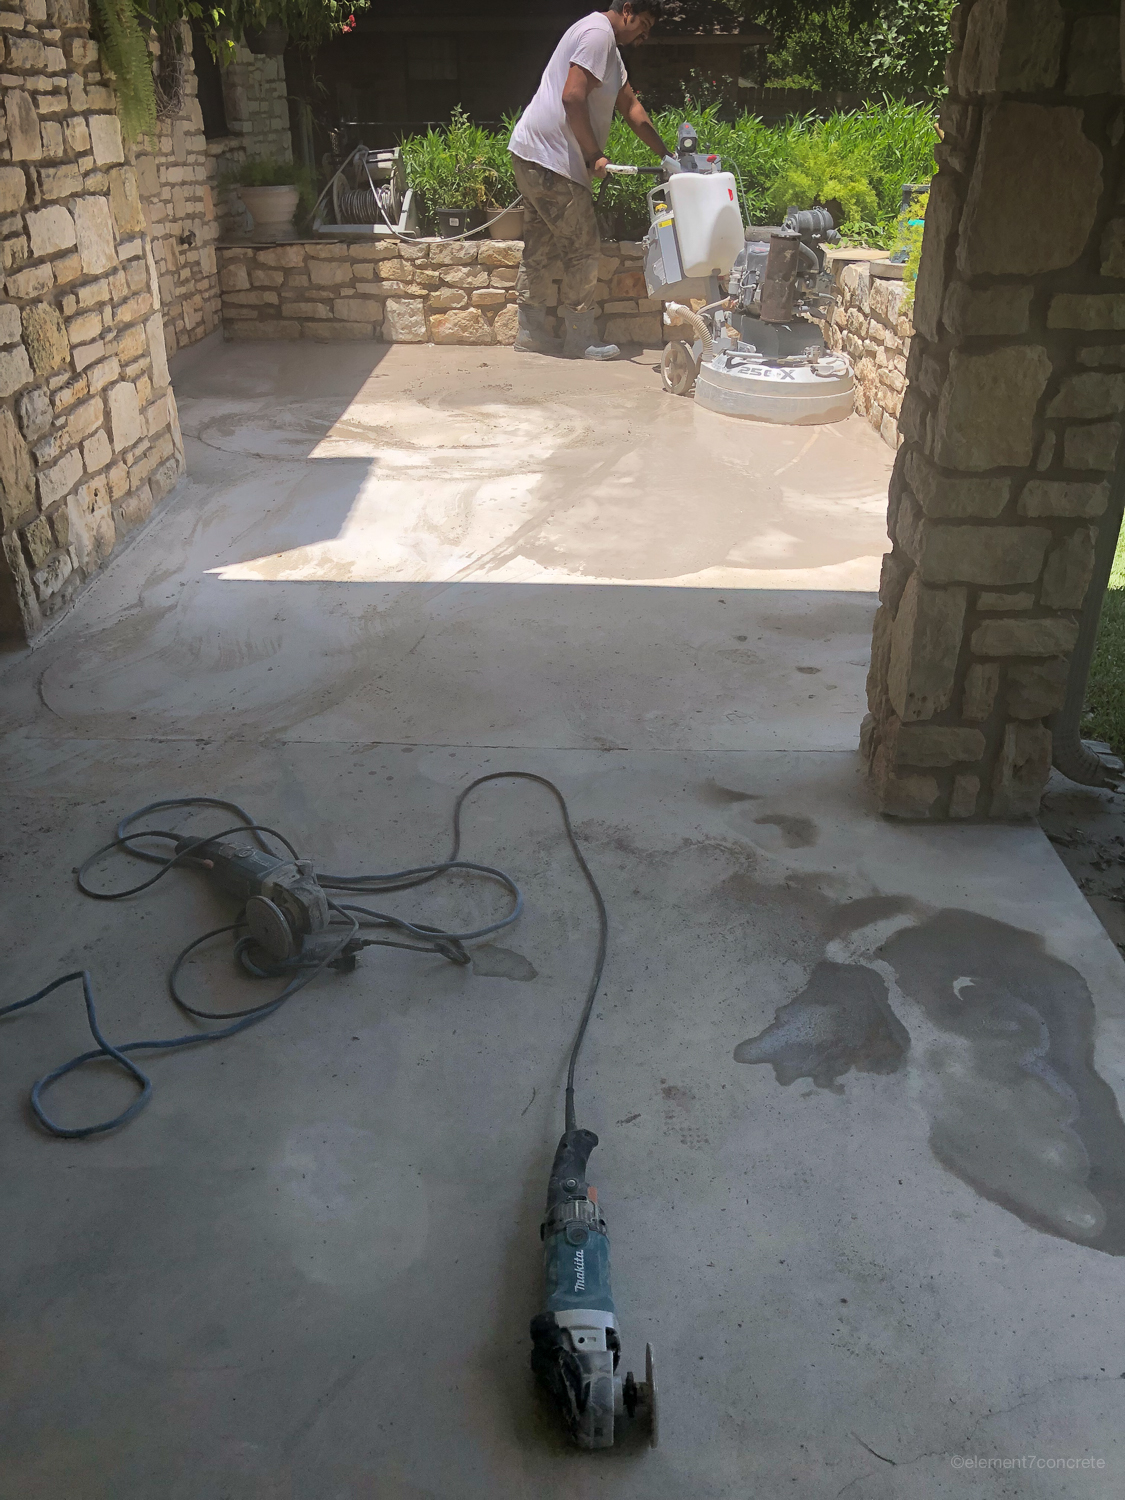 Grinding - Grinding removes the paint in the most ecological way. It also perfectly prepares the concrete for materials that will penetrate and last.